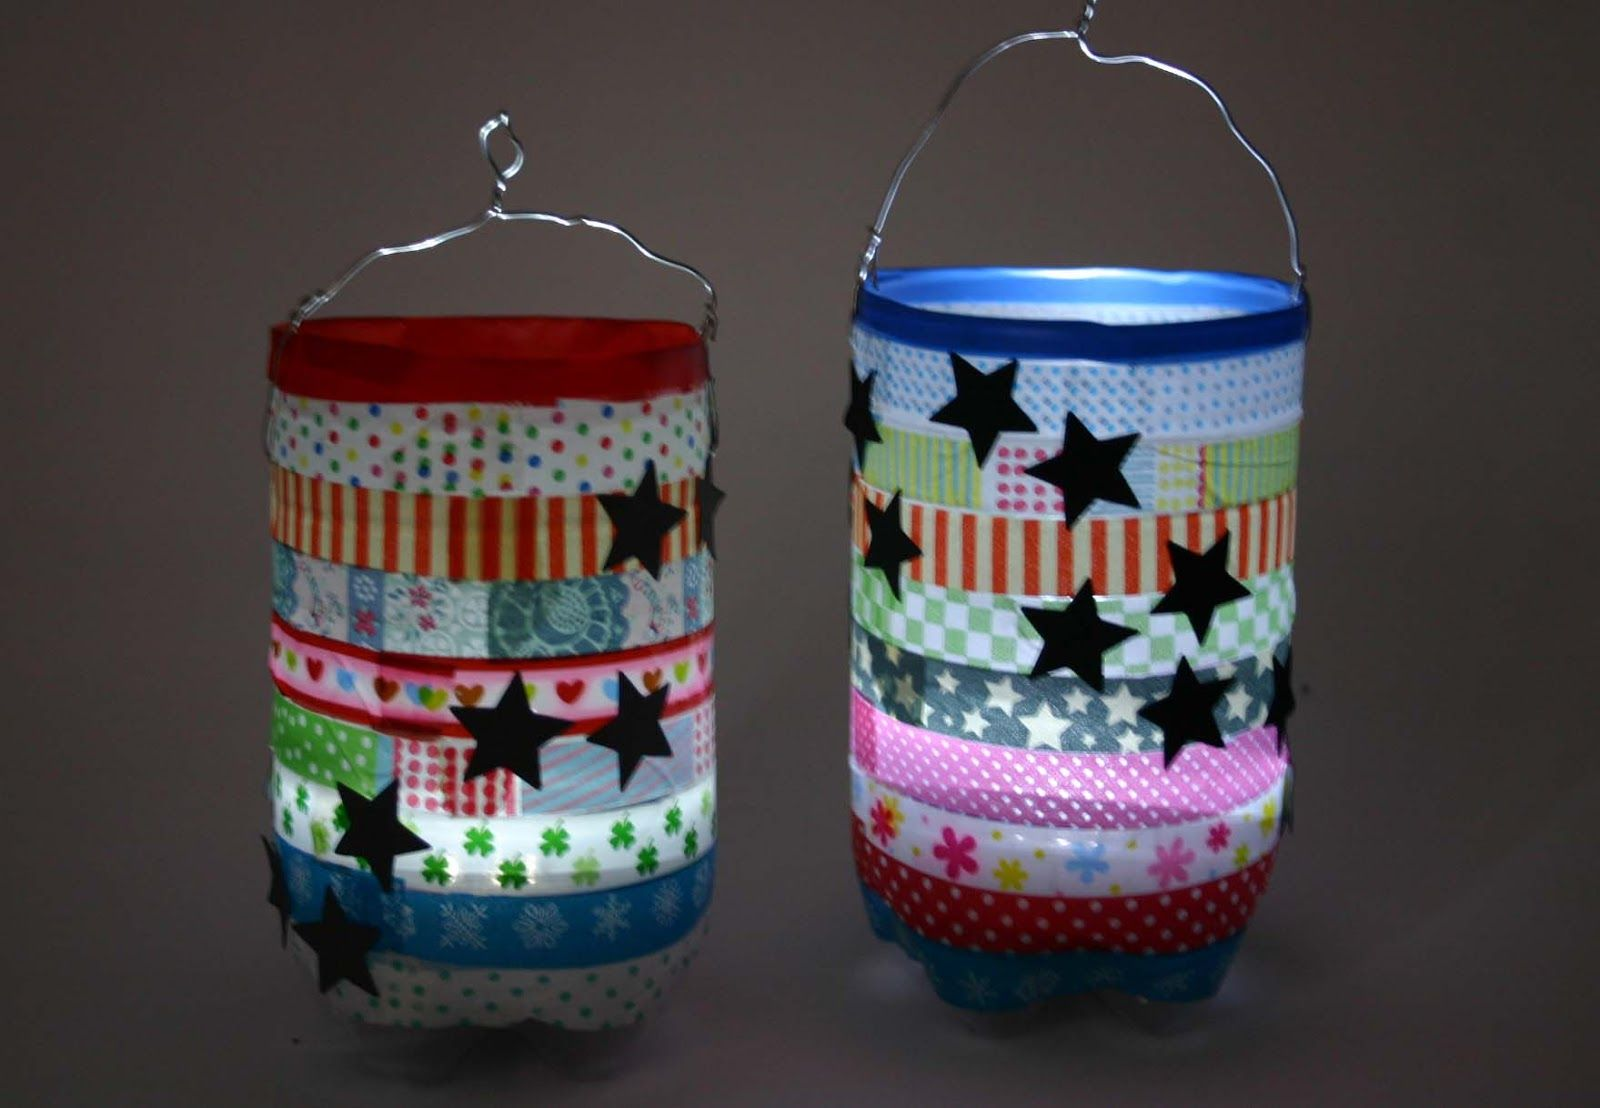 pittifours last minute laterne anleitung lantern craft lanterns diy for kids